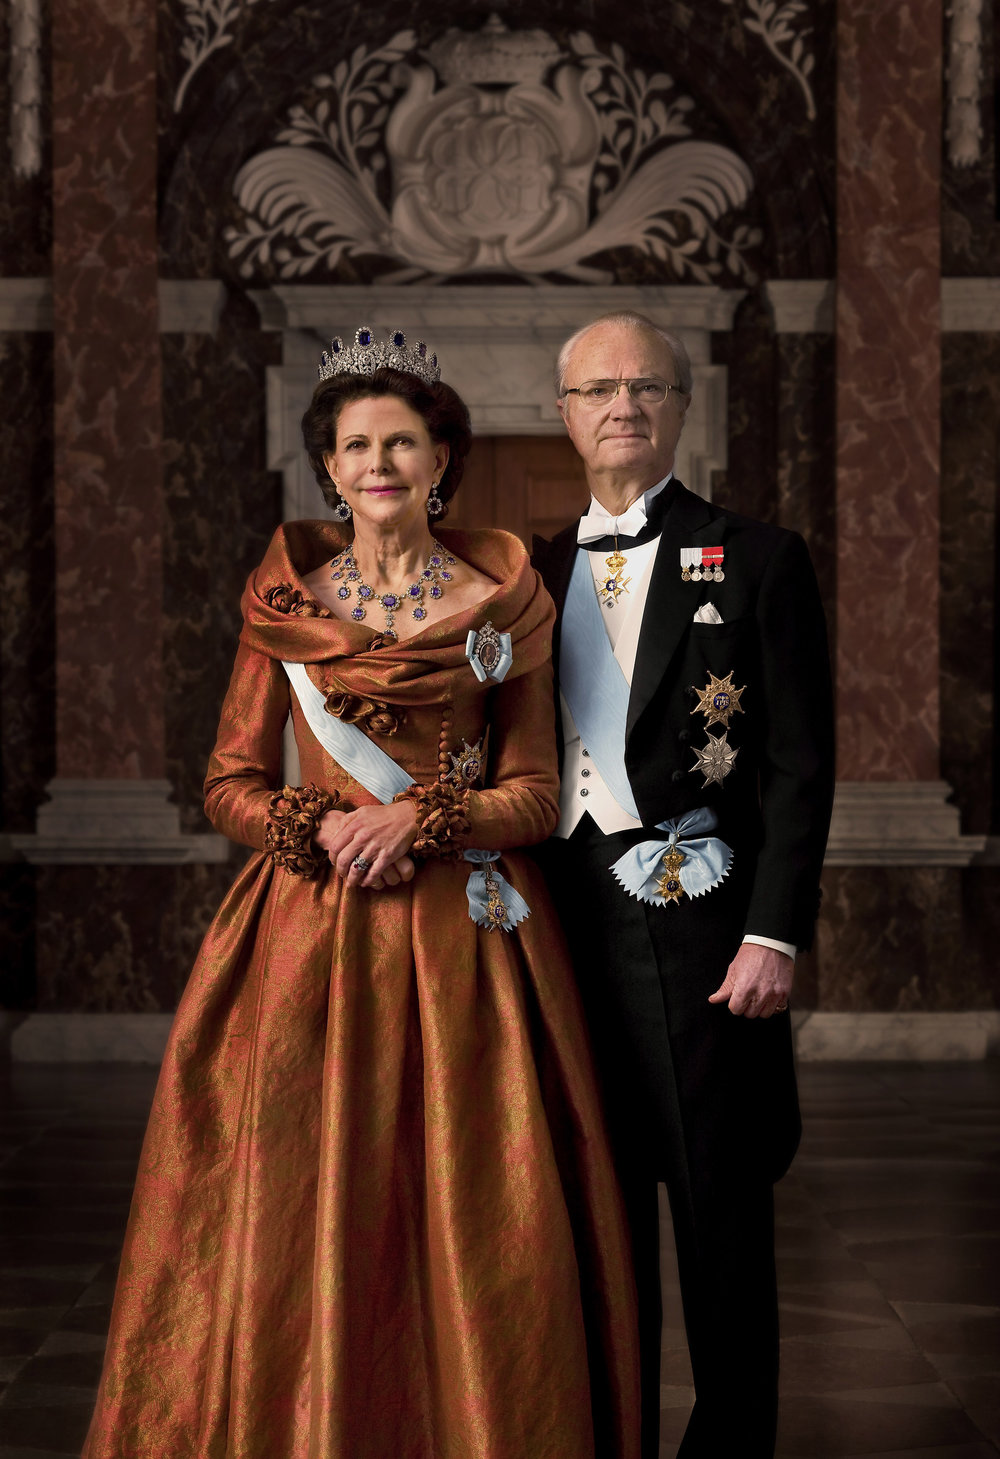 Photo: The Royal Court, Sweden/Bruno Ehrs